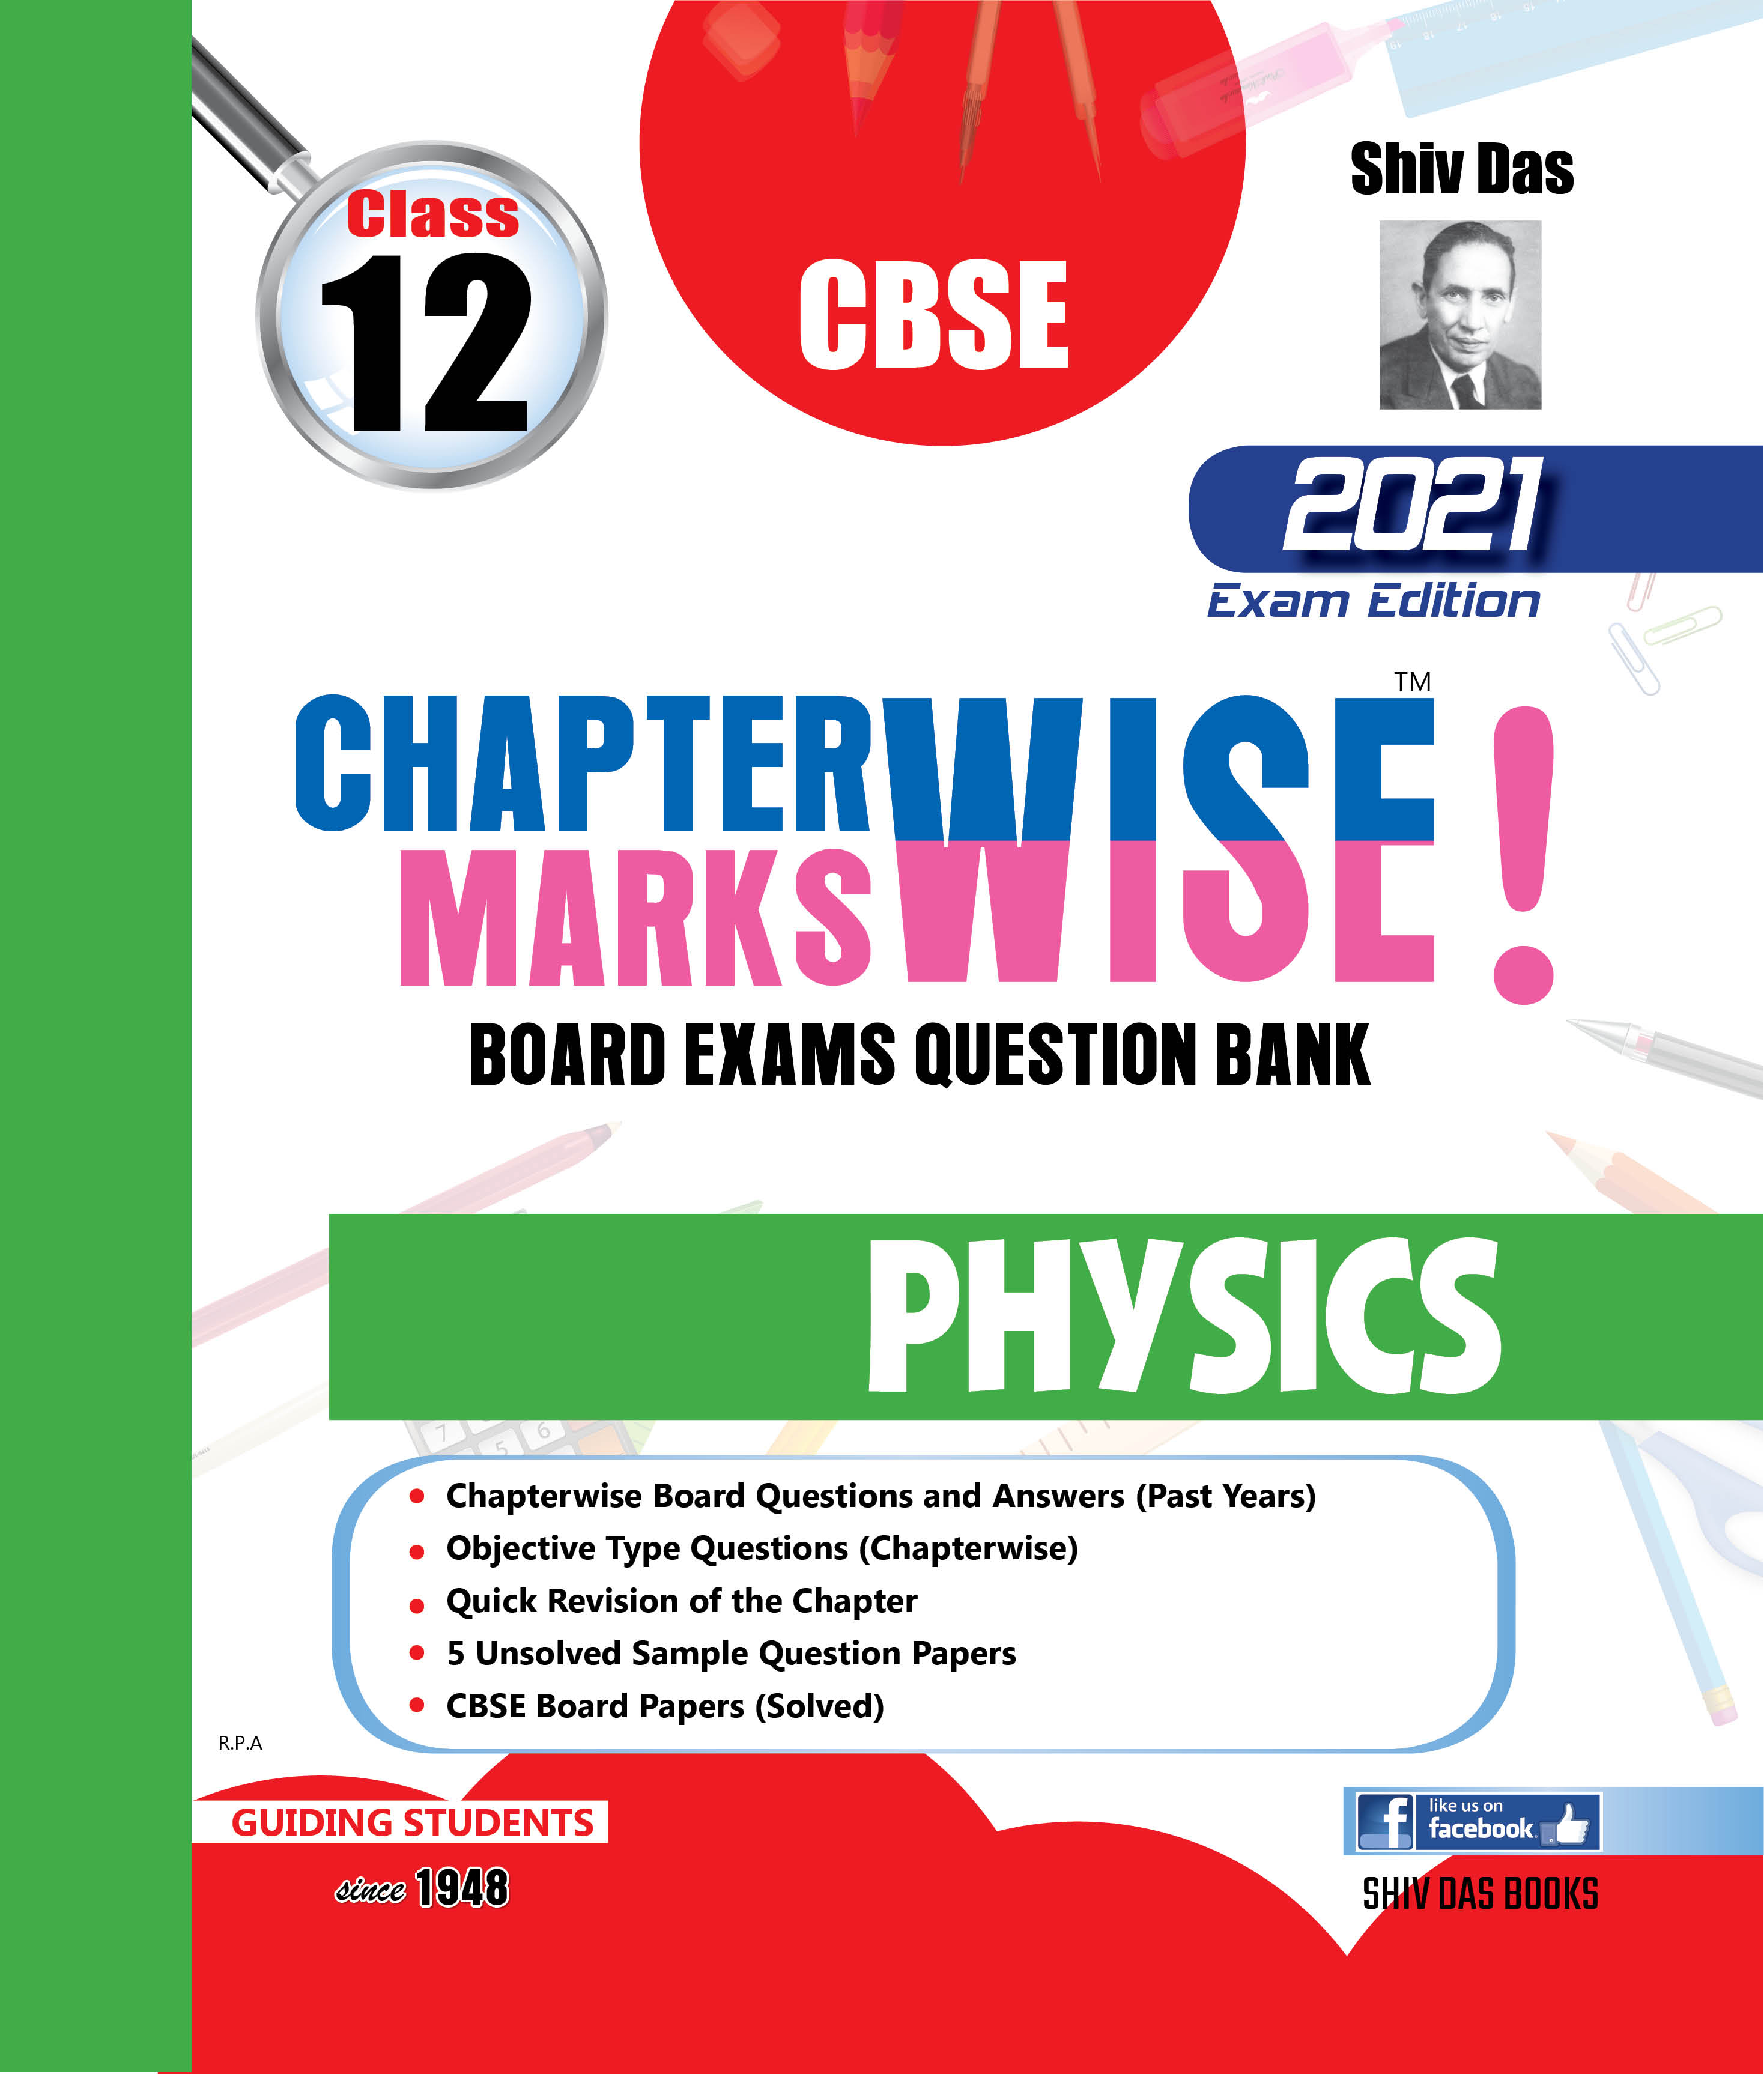 CBSE Chapterwise and Markswise Board Exam Question Bank By SHIVDAS for Class 12 Physics (2021 Board Exam Edition)